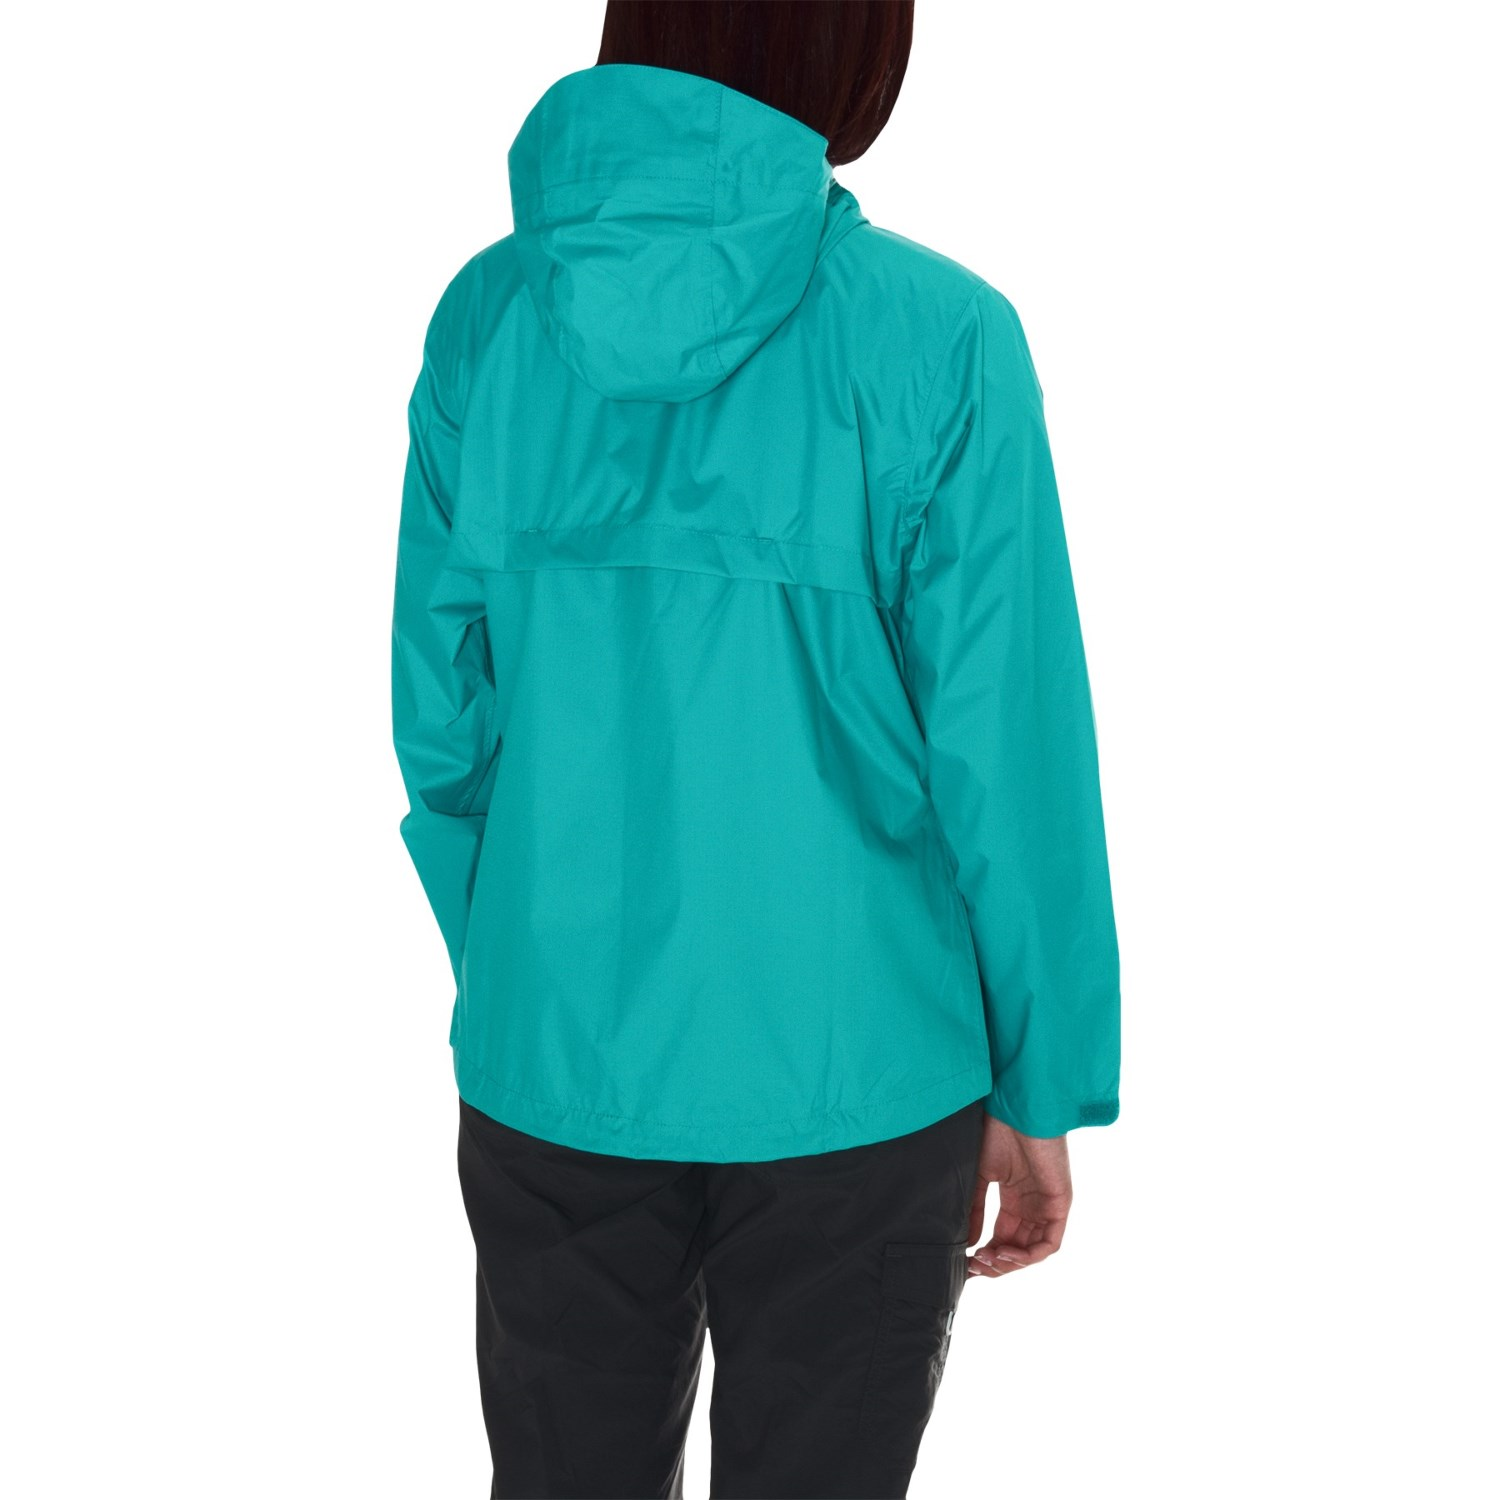 White Sierra Cloudburst Trabagon Rain Jacket (For Women) - Save 50%